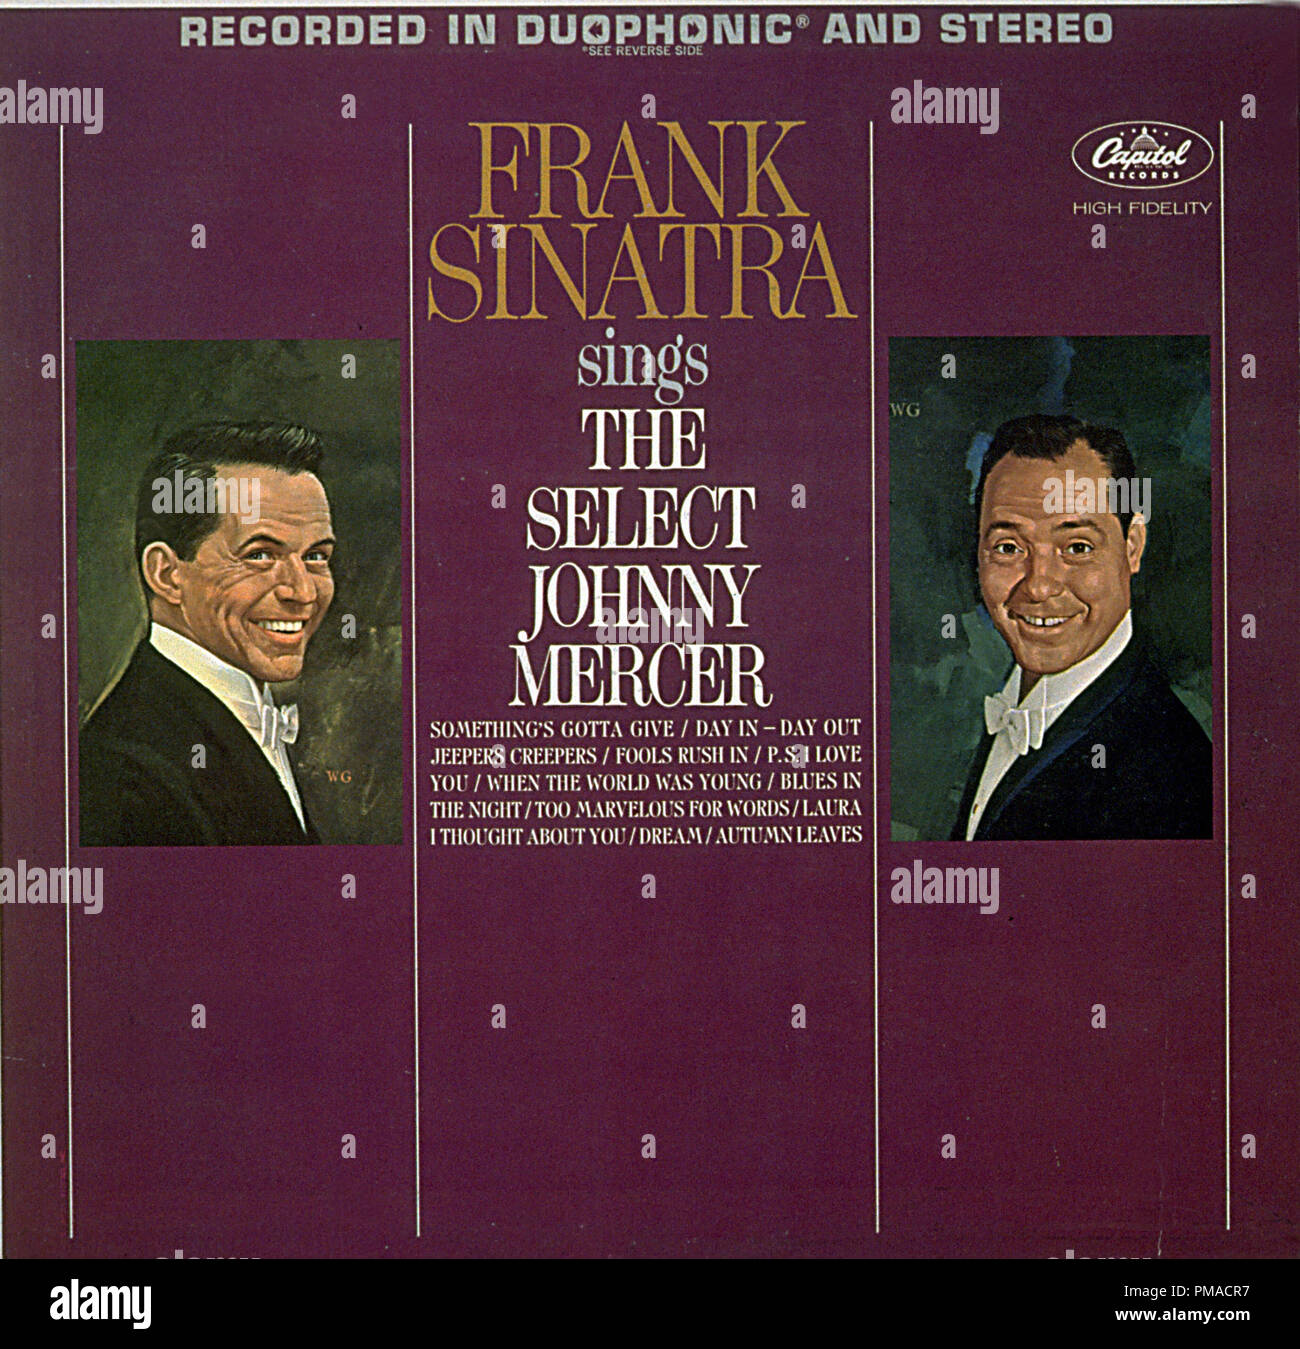 Frank Sinatra Sings the Select Johnny Mercer is a 1995 compilation album by Frank Sinatra, that has him singing the songs written by Johnny Mercer.  File Reference # 32368_415THA - Stock Image